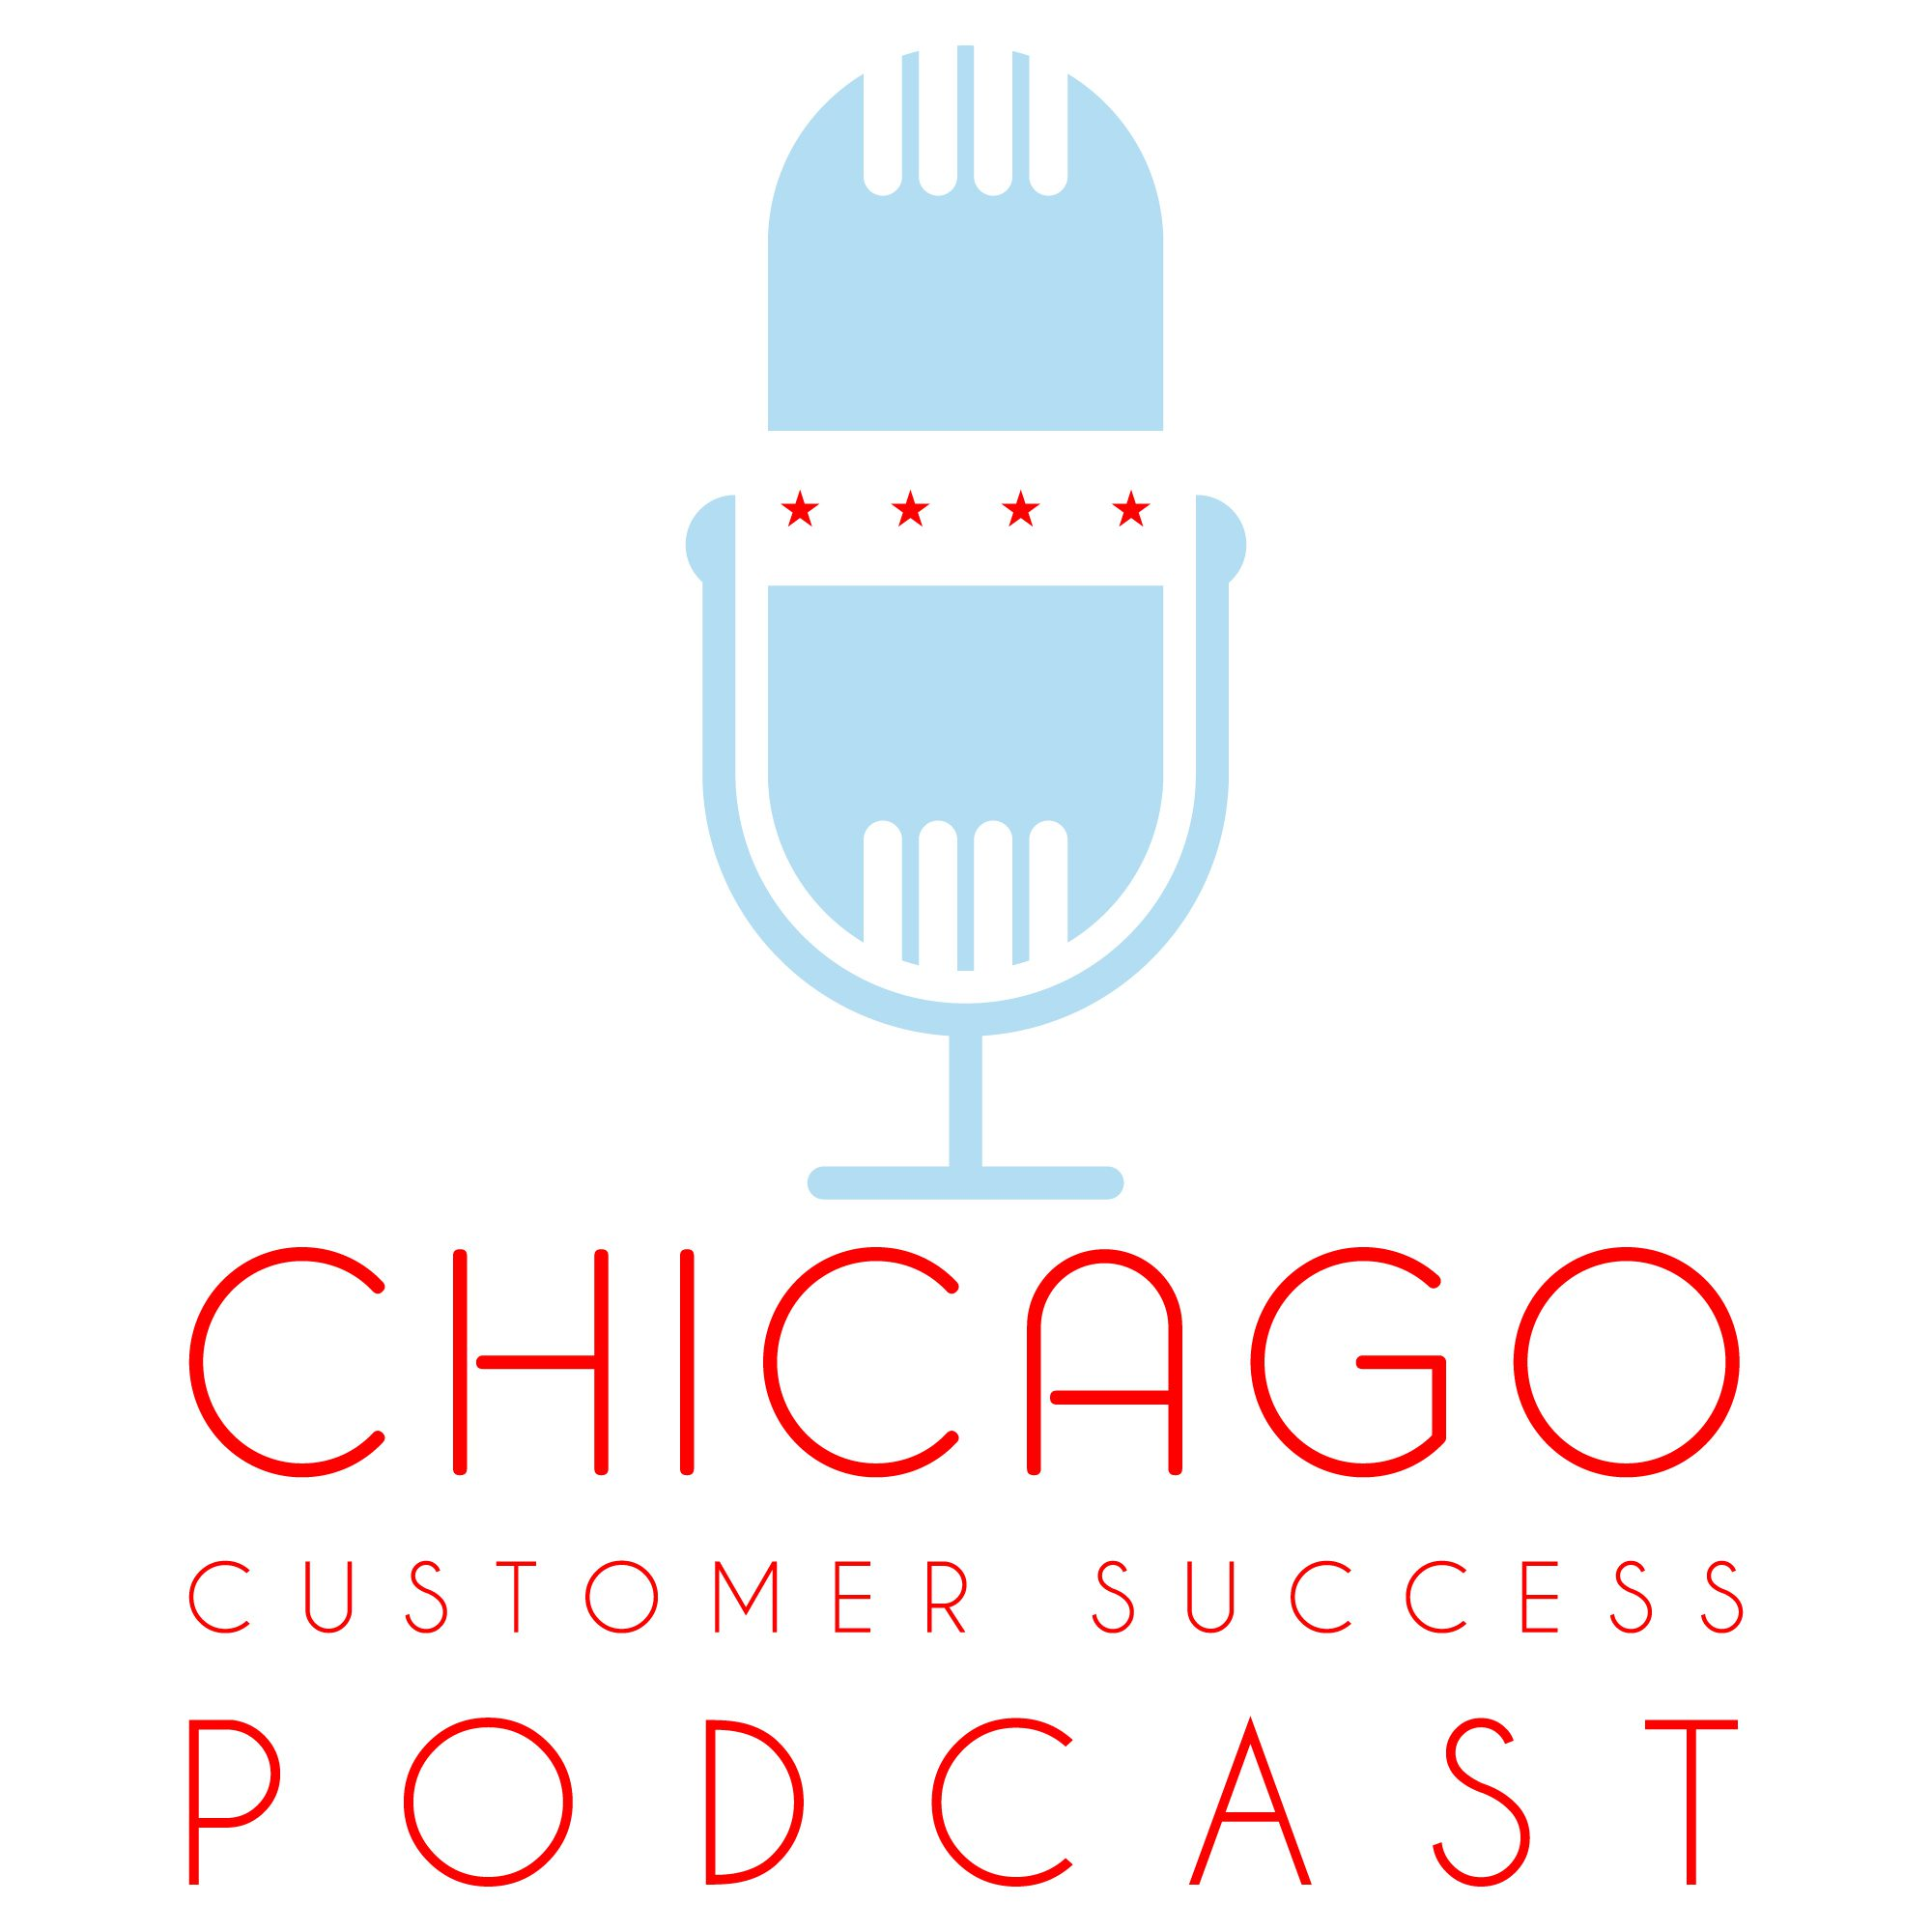 Chicago Customer Success